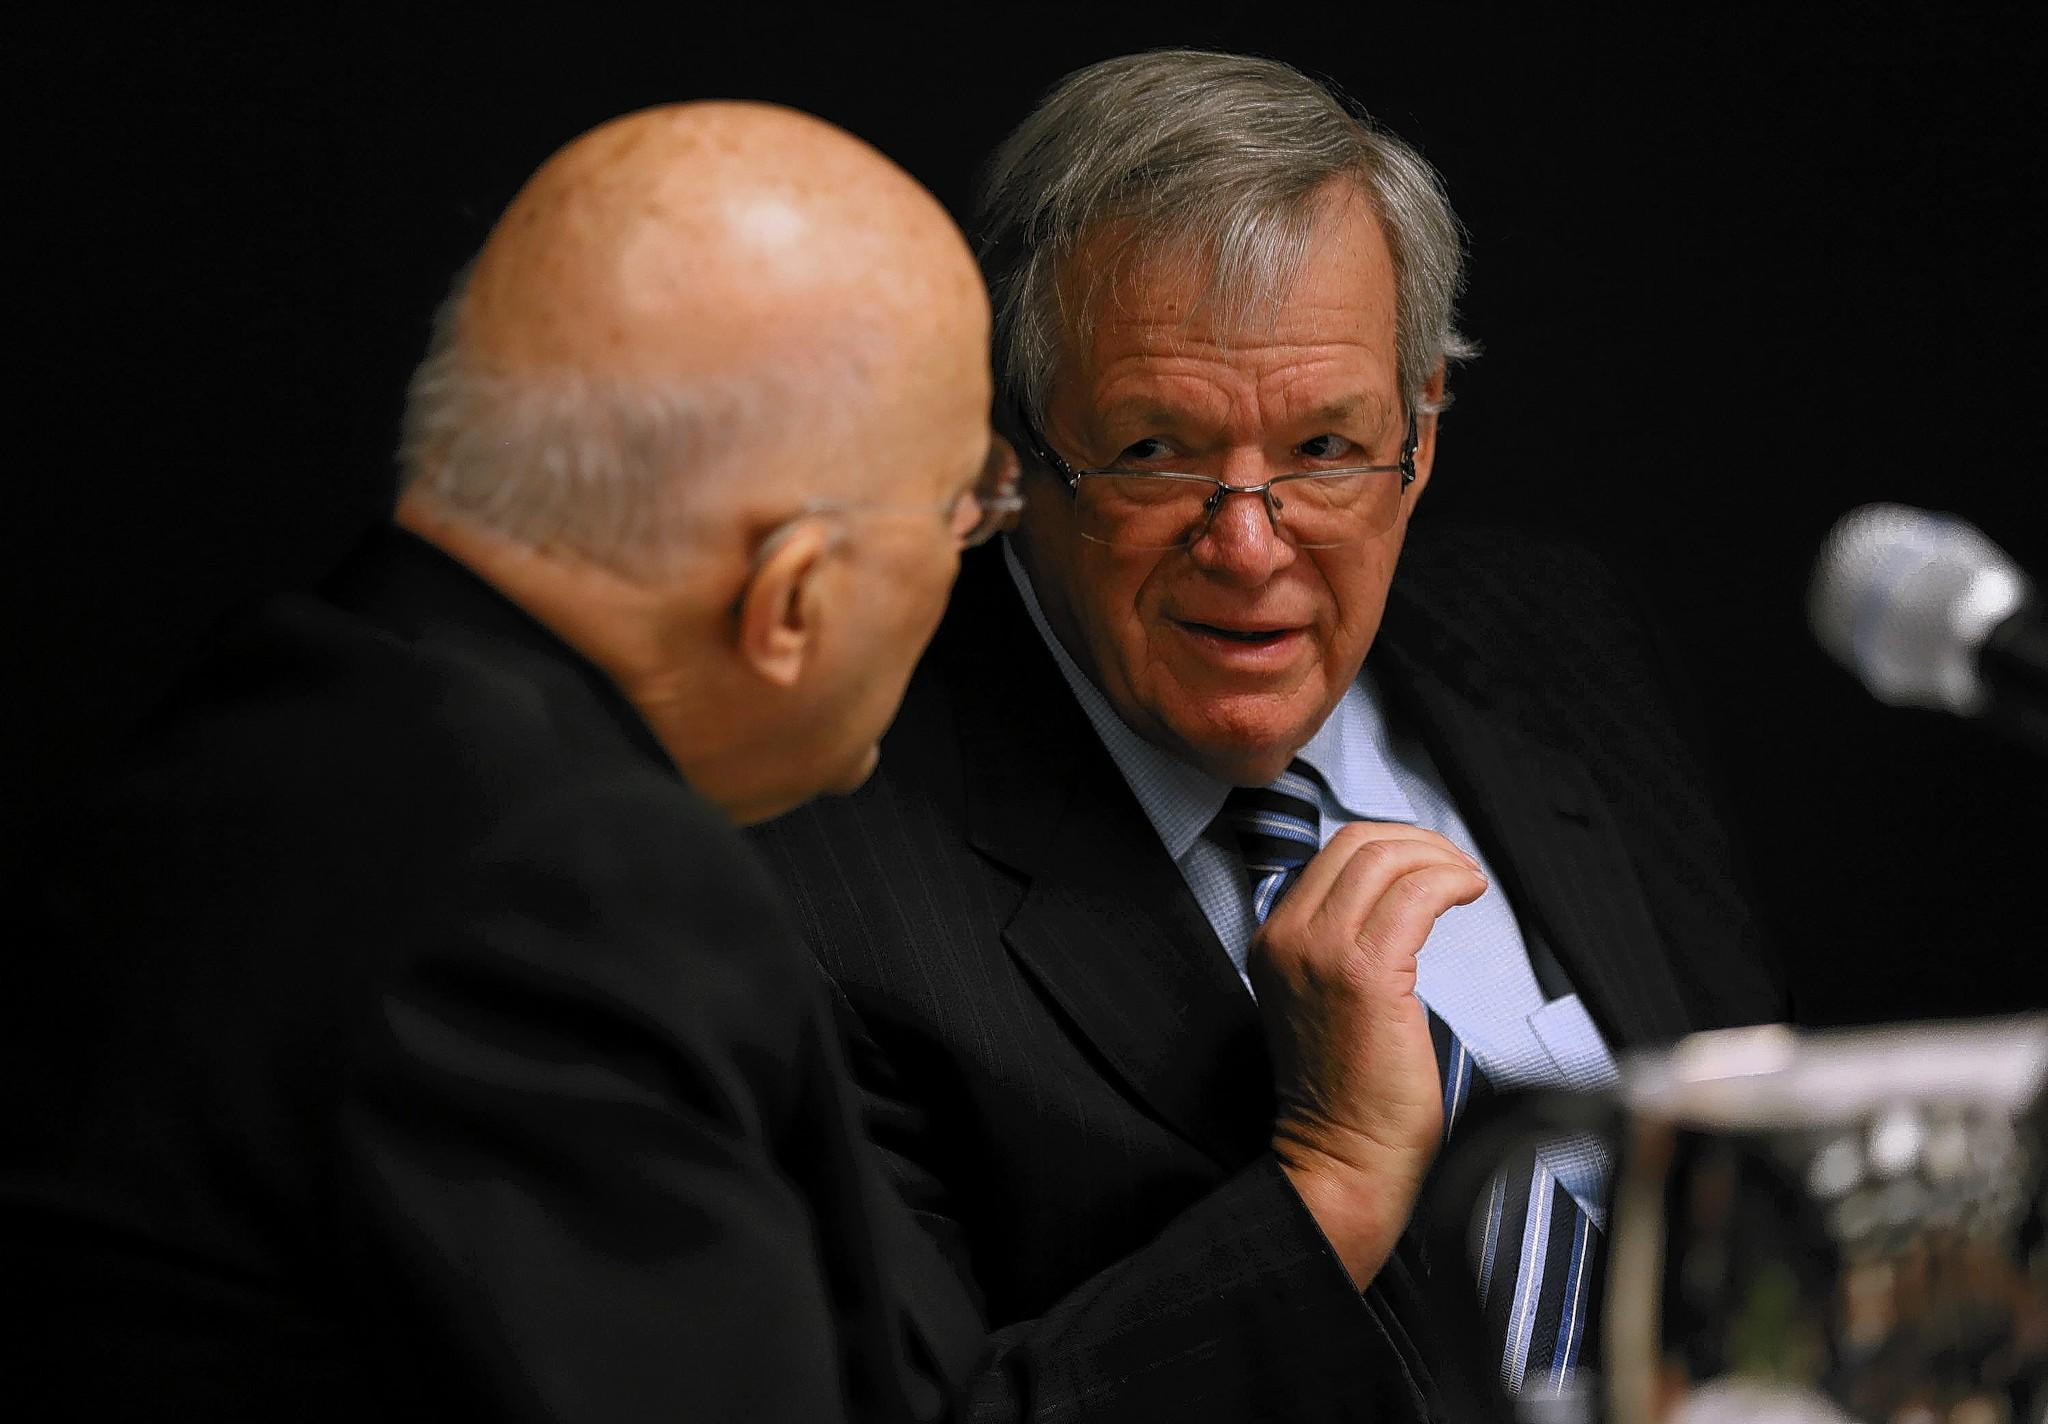 Cardinal Francis George, left, and former U.S. House Speaker Dennis Hastert said in an appearance at DePaul University on Tuesday that Congress should pass immigration reform.